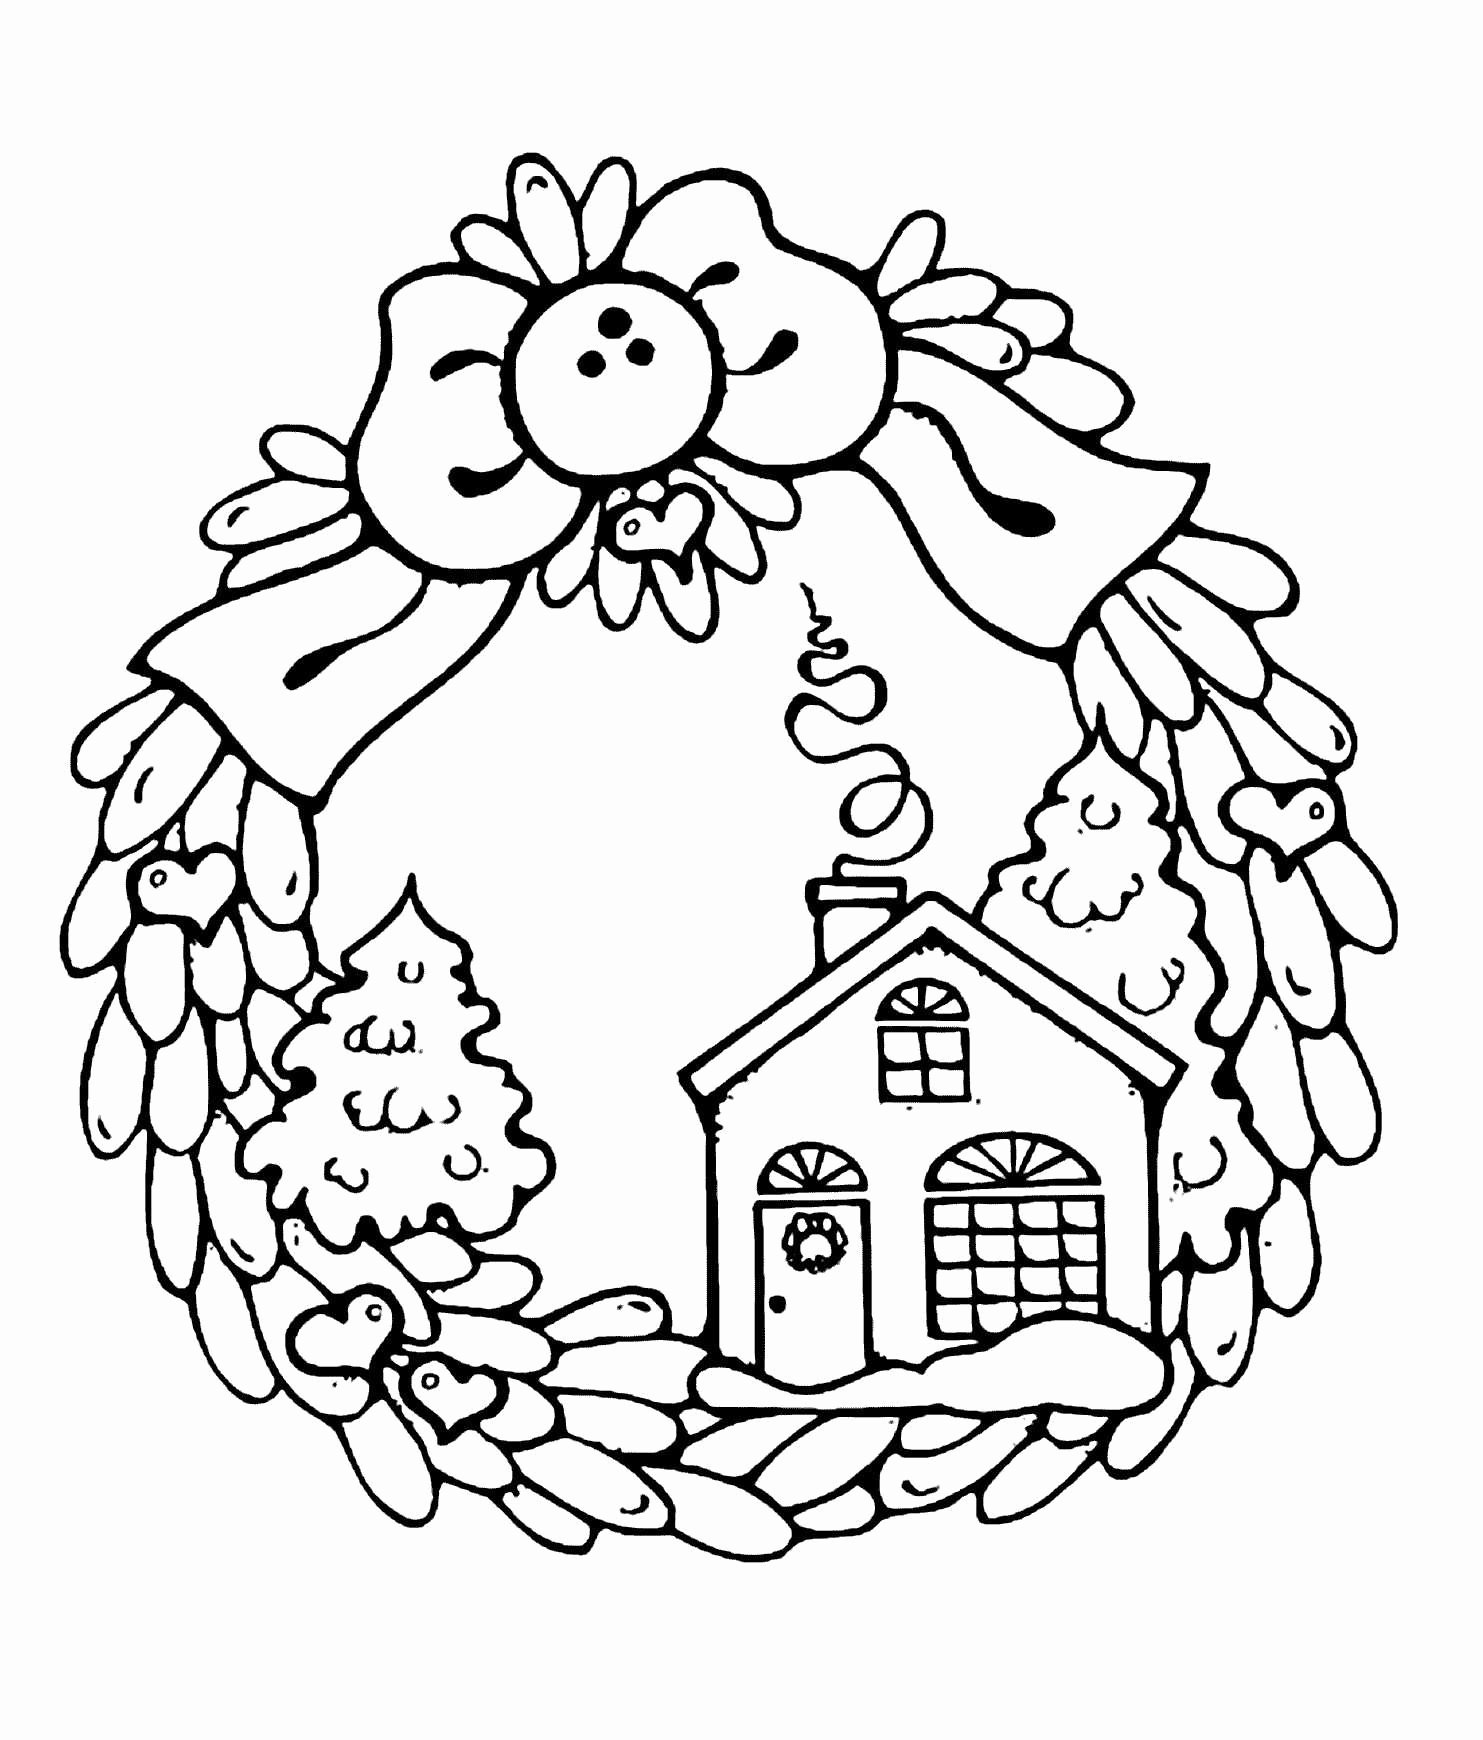 wreath coloring pages wreath coloring pages free printable wreath coloring pages wreath coloring pages 1 1